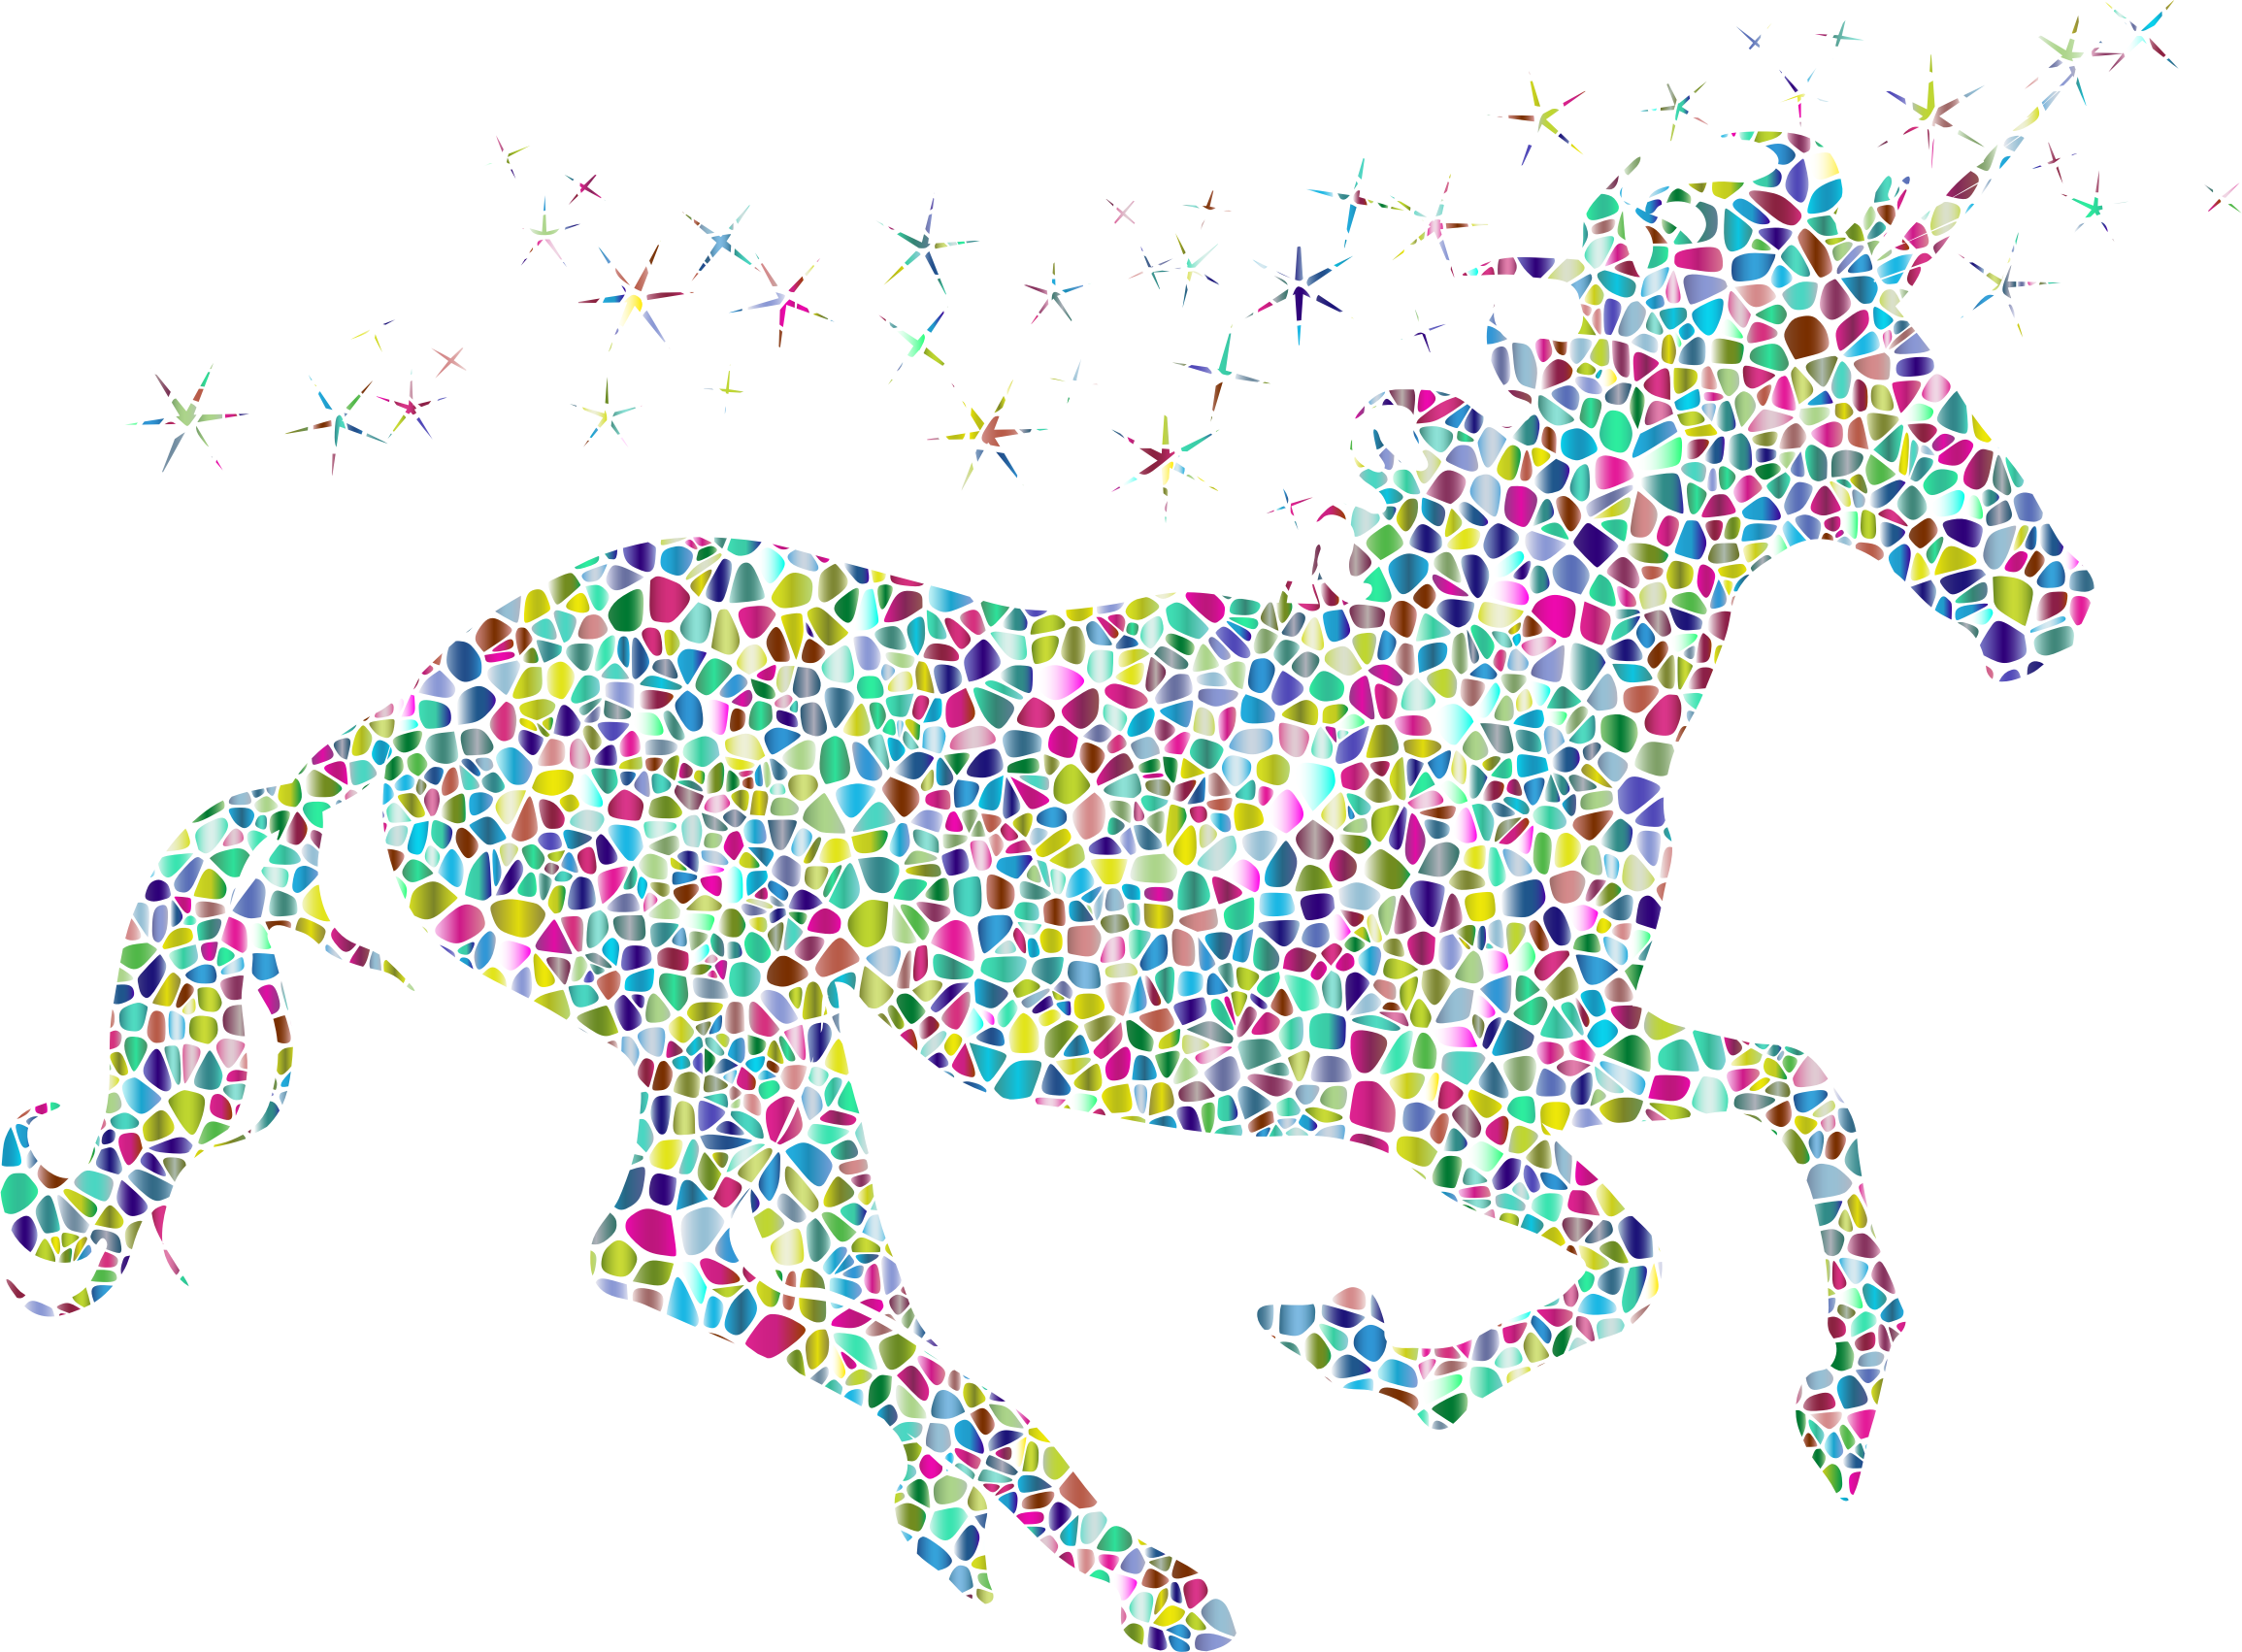 Polyprismatic Tiled Magical Unicorn Silhouette by GDJ